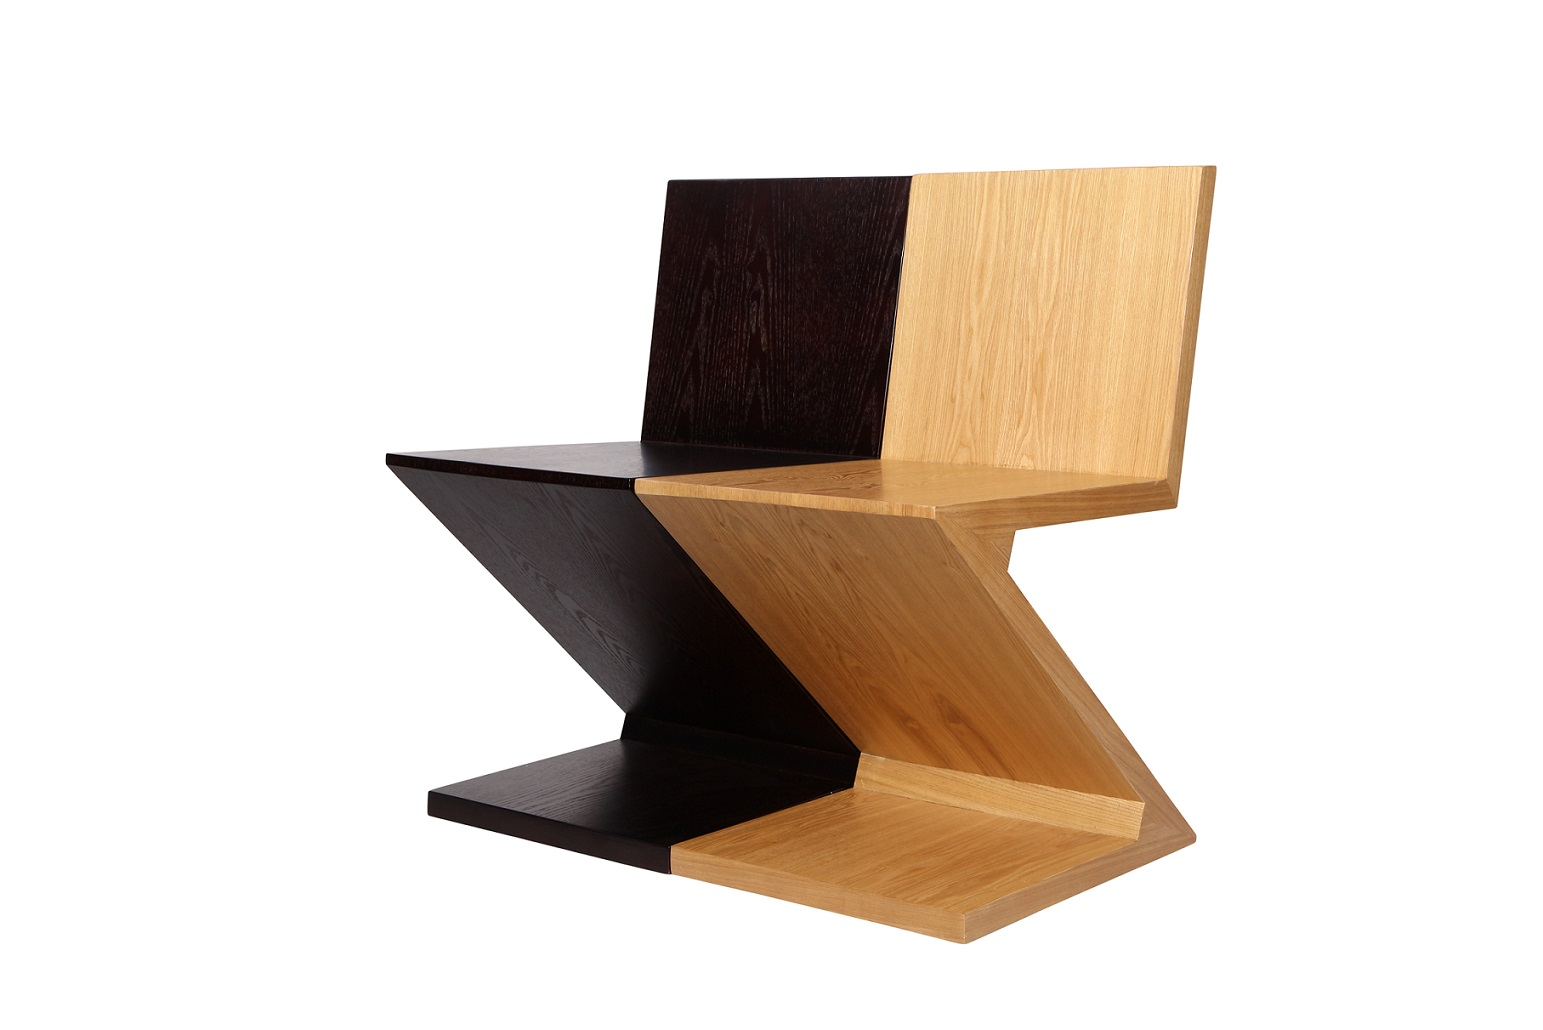 Shop Rietveld Zig Zag Chair for only $1239